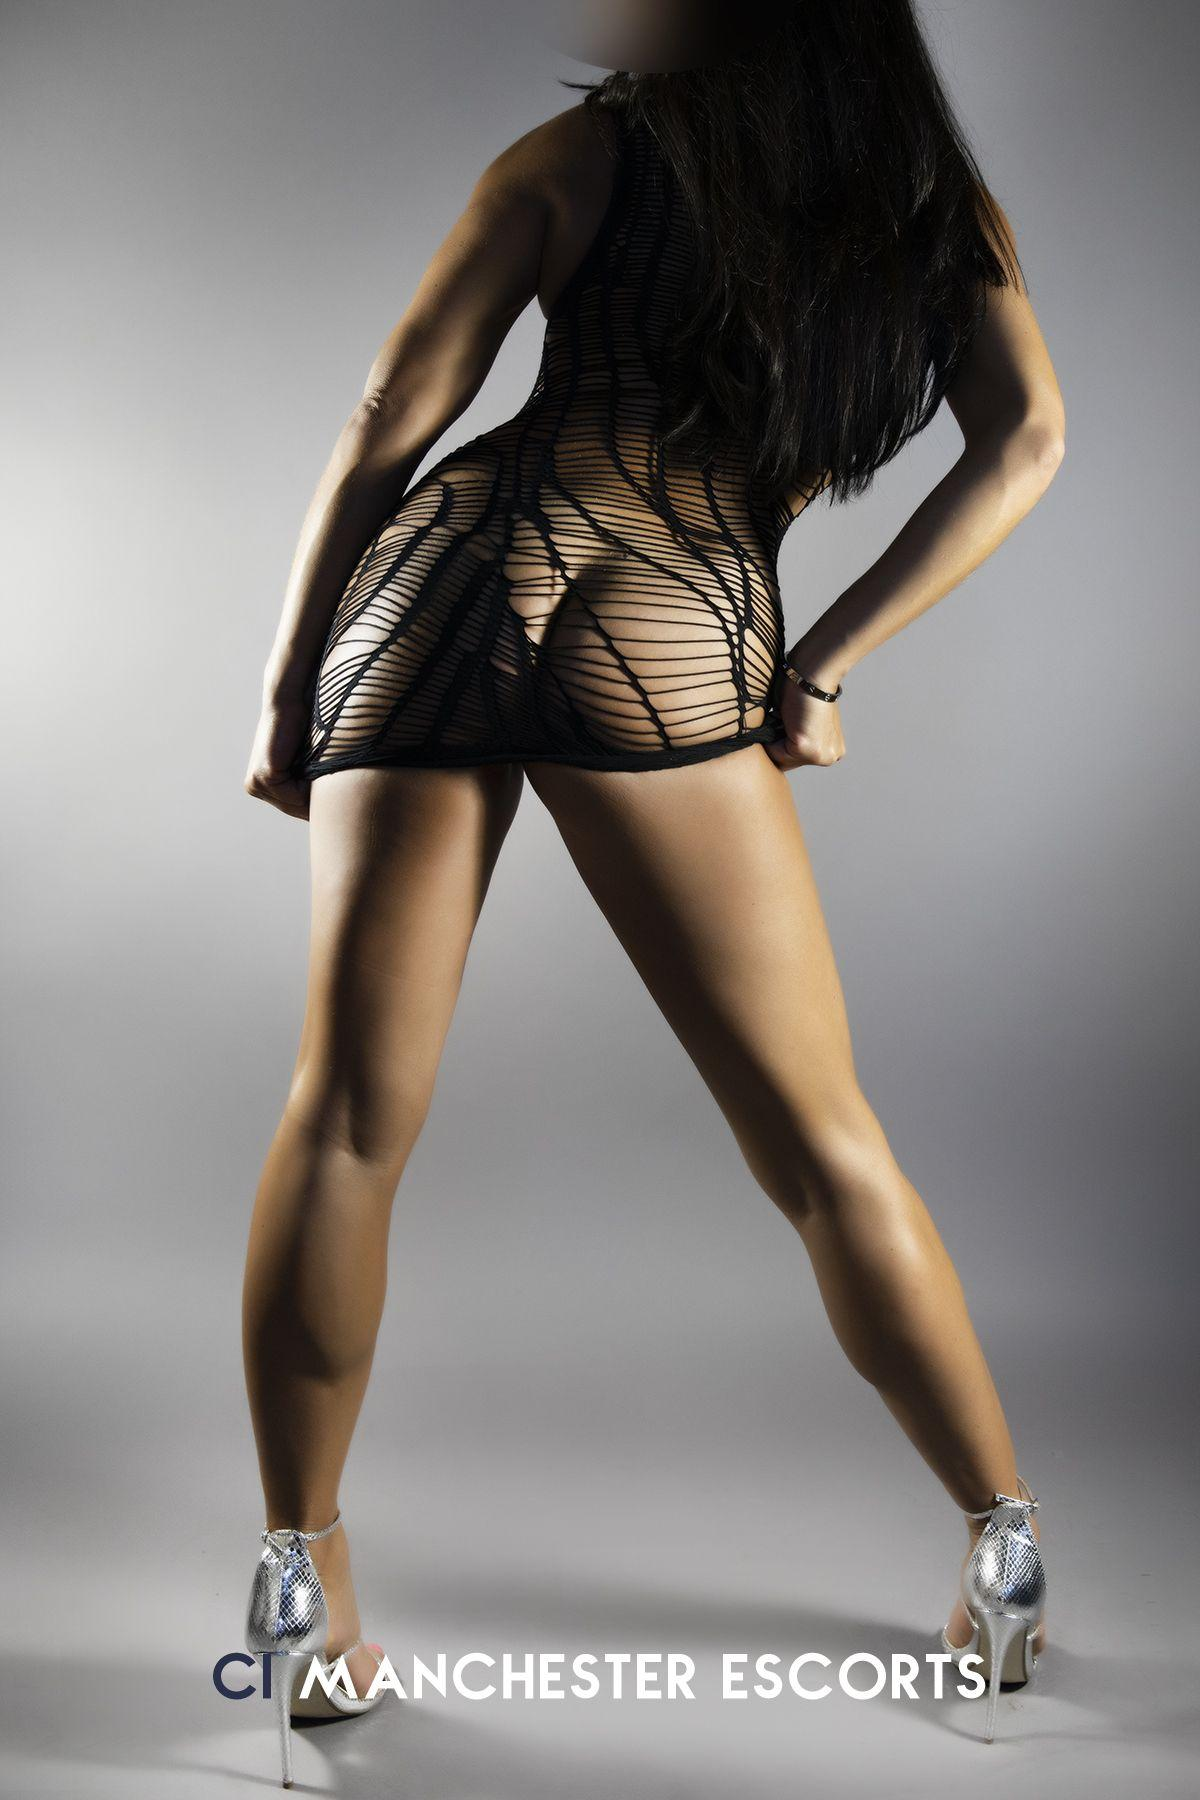 Sophie from Candyshop Escorts